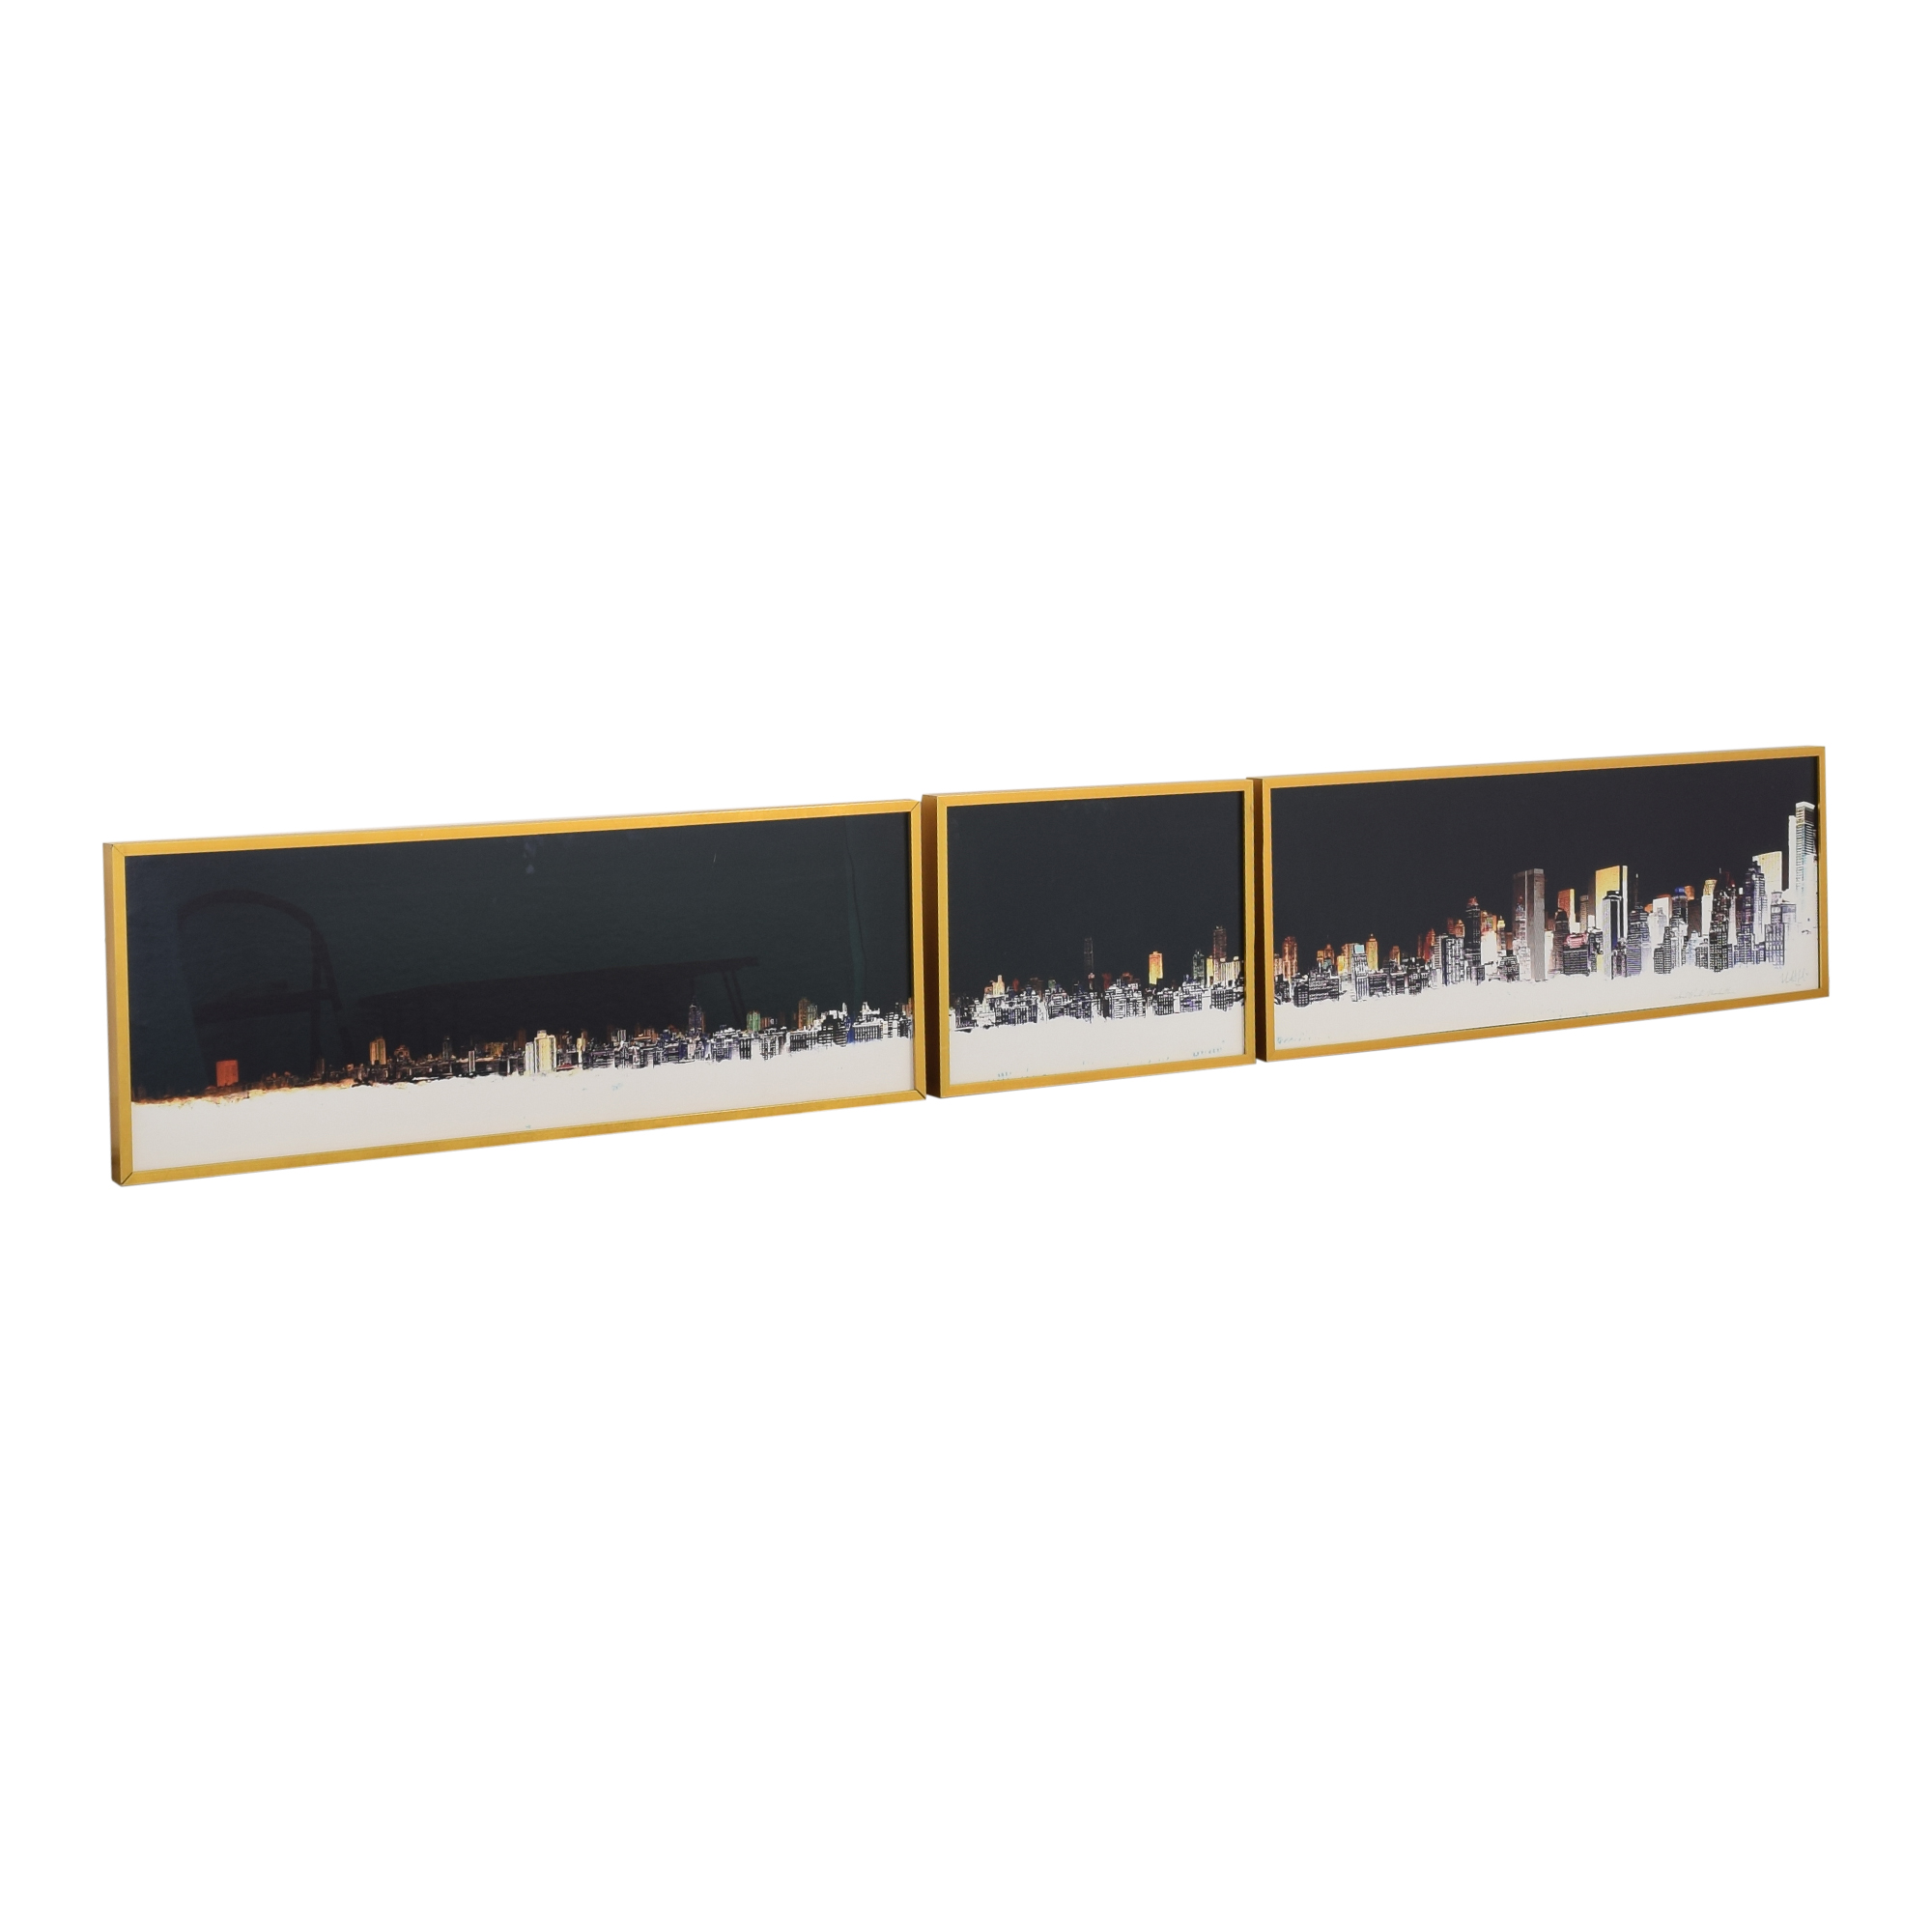 Framed Photography Triptych Wall Art dimensions